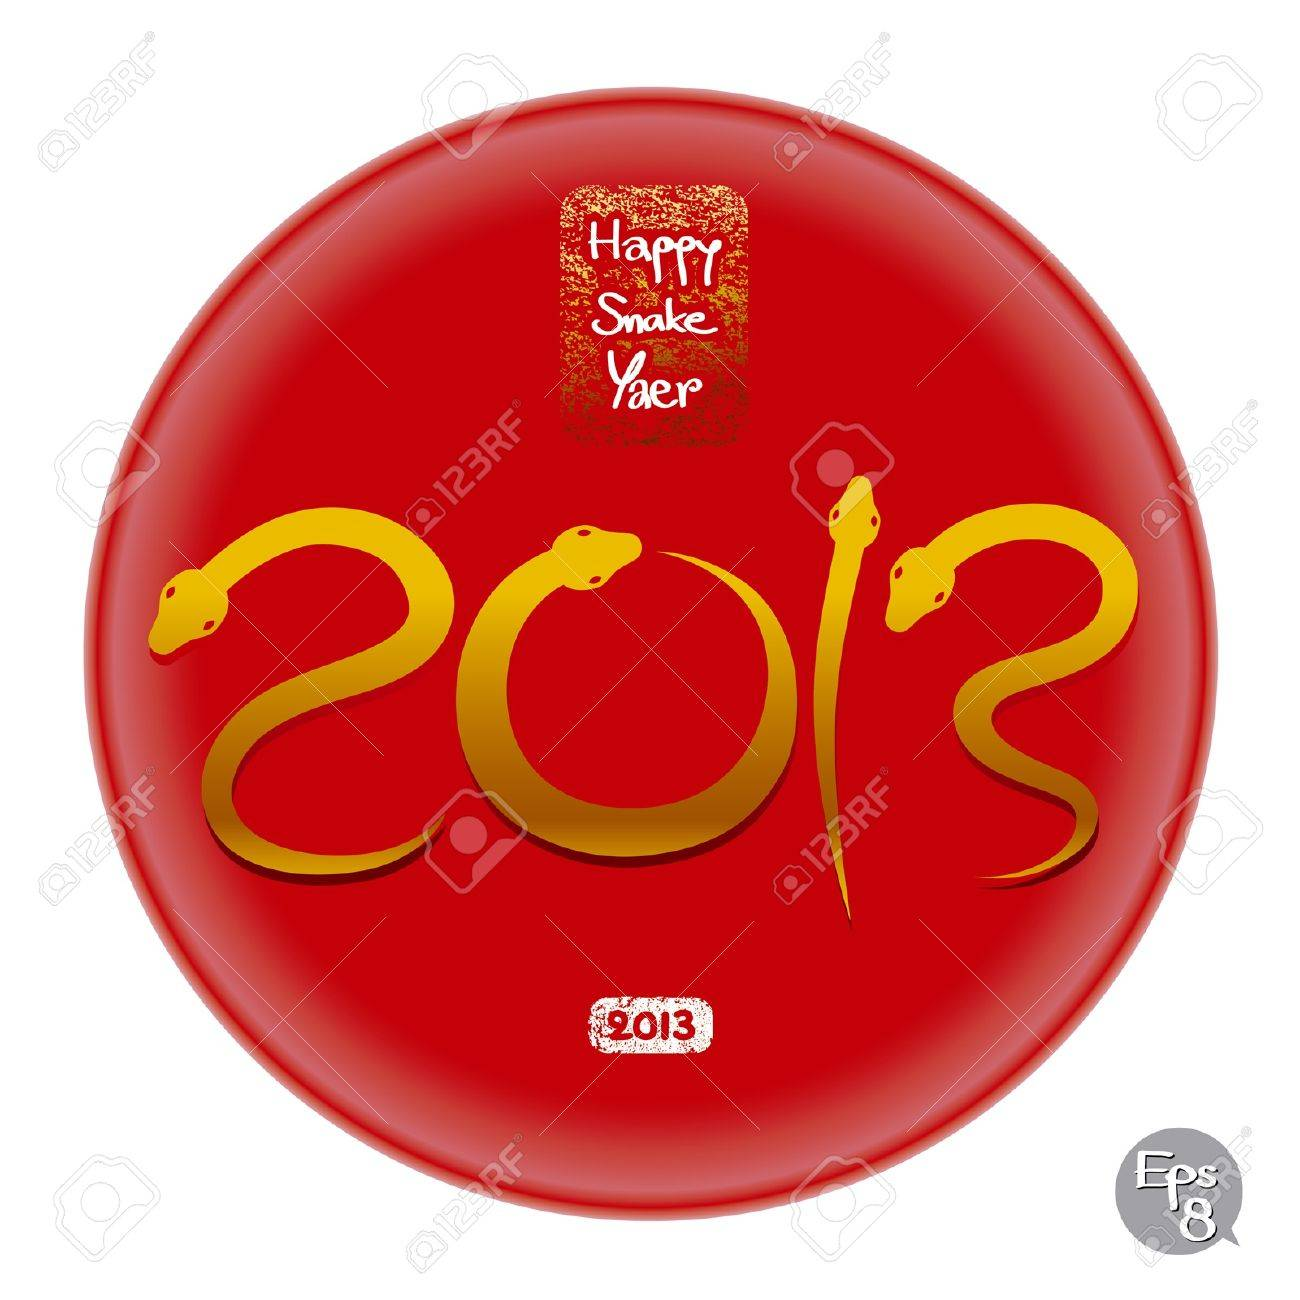 happy snake year 2013 Stock Vector - 15528495